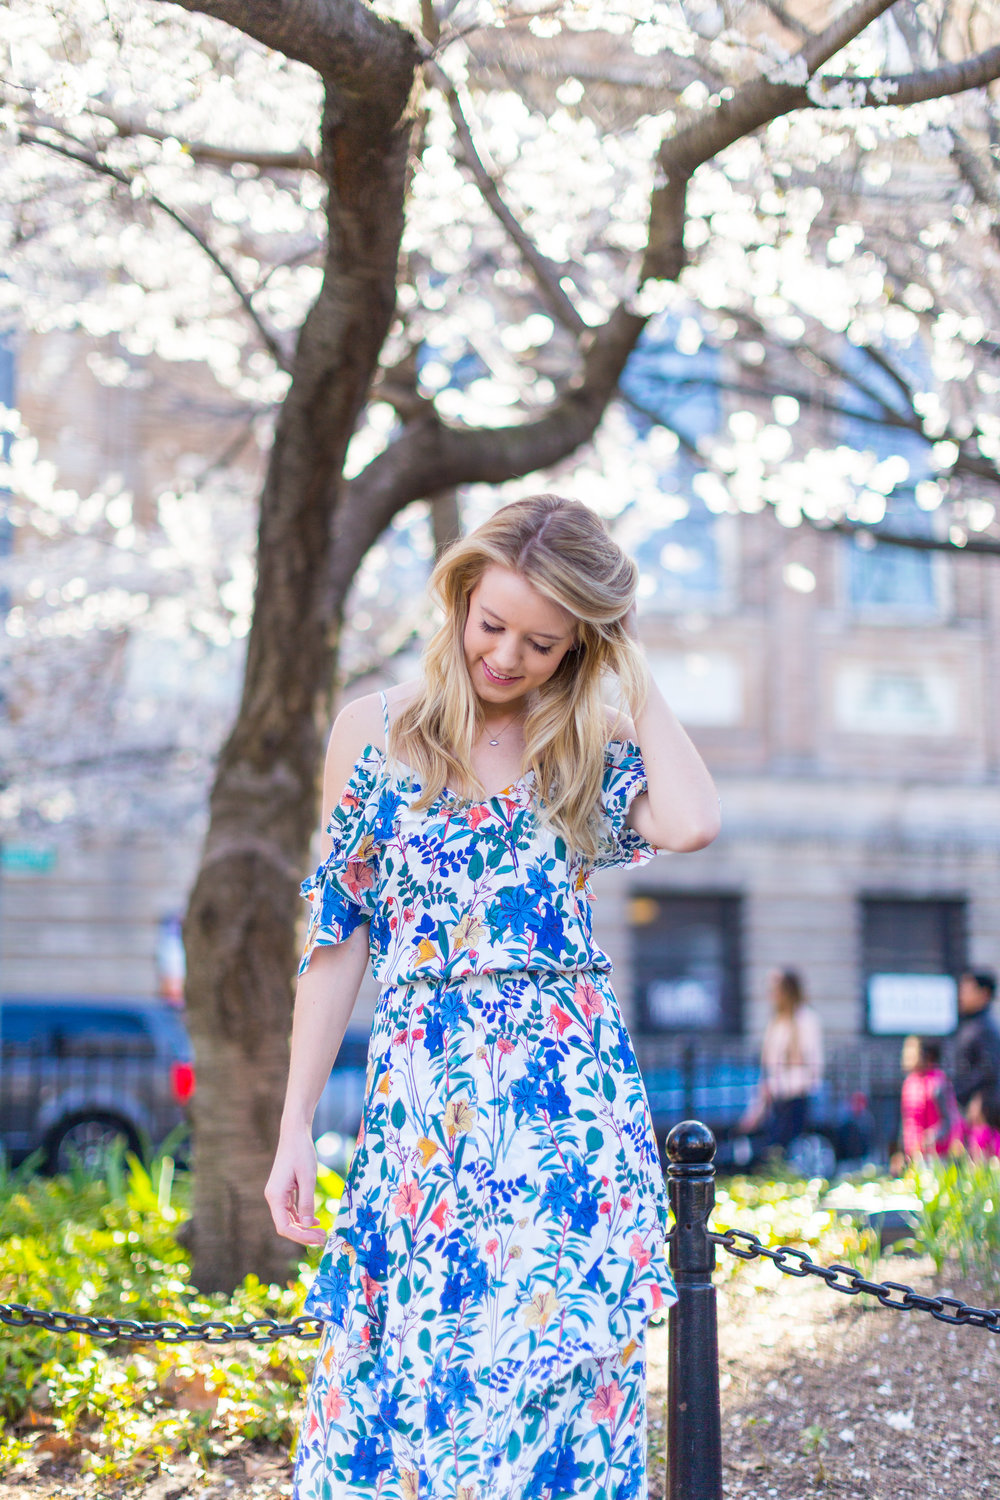 Ruffle Spring Floral Dress Washington Square Park NYC-3.jpg